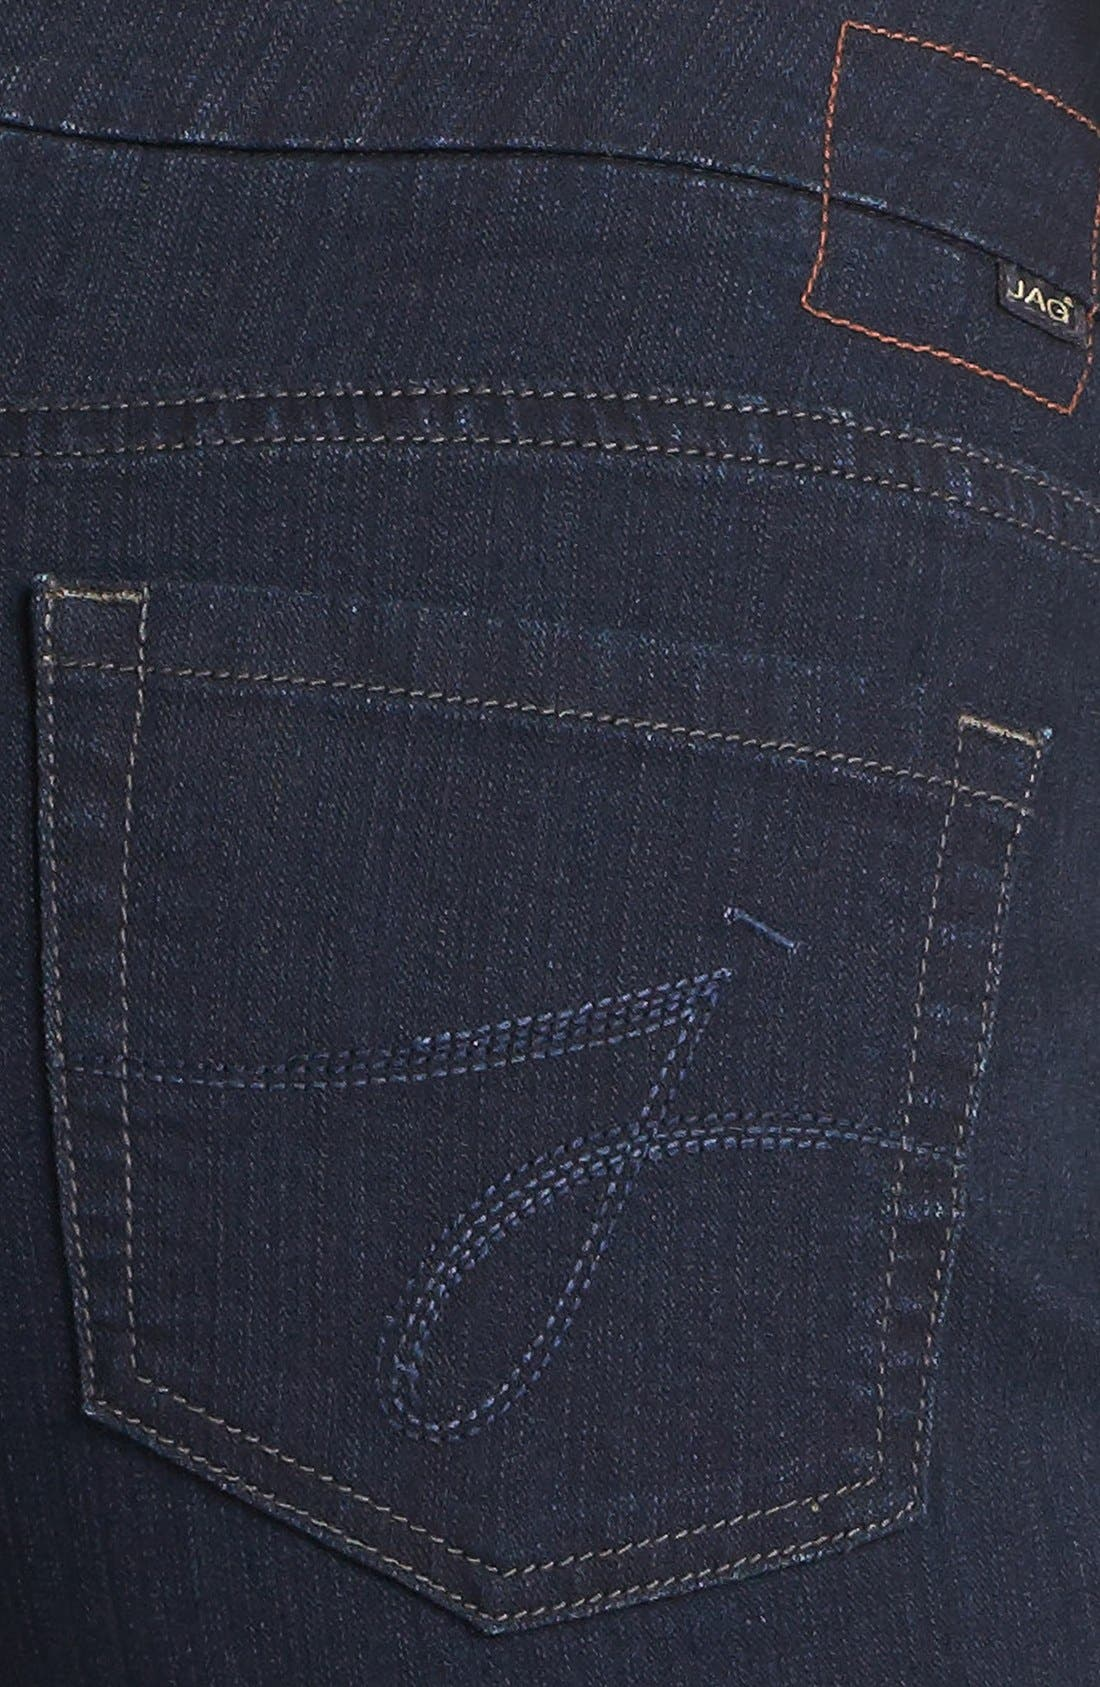 'Peri' Pull-On Straight Leg Jeans,                             Alternate thumbnail 3, color,                             402